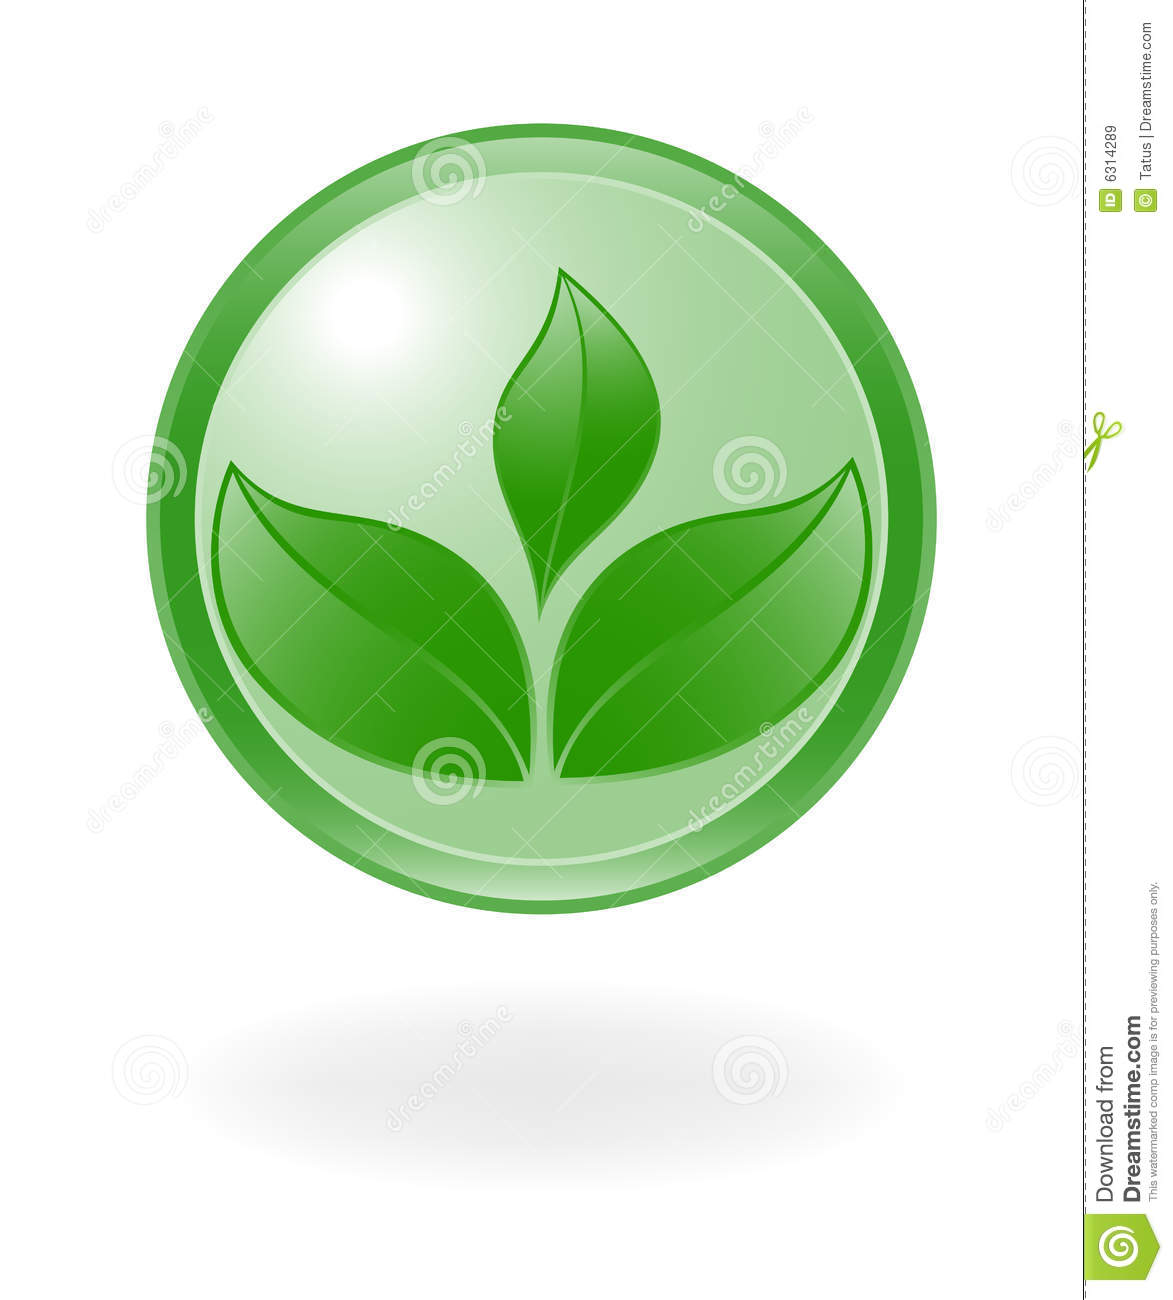 Plant Symbol. Royalty Free Stock Images - Image: 6314289